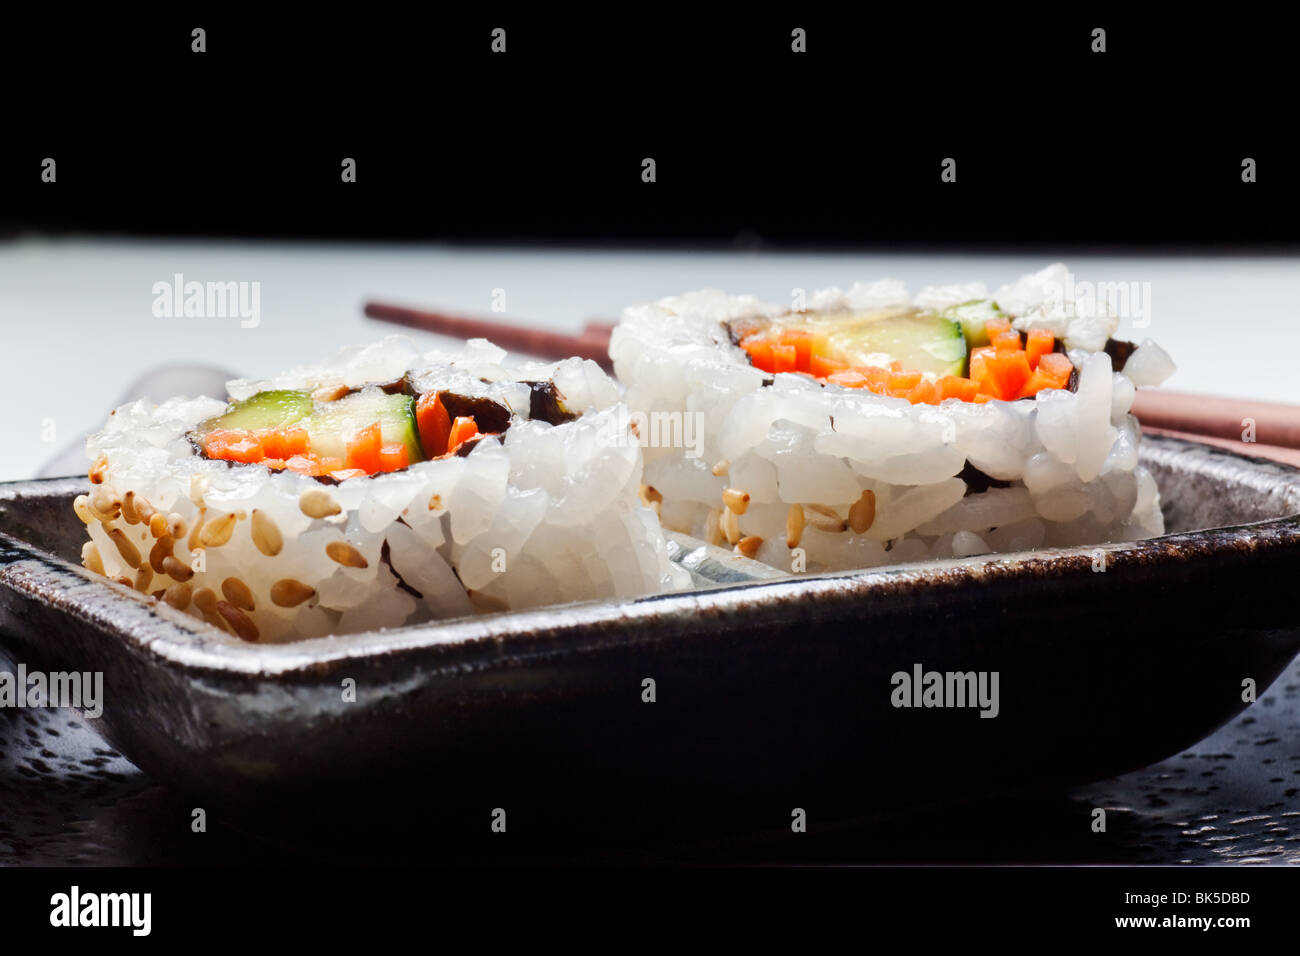 Vegetarian sushi California roll with rice and seaweed on Japanese plates - Stock Image